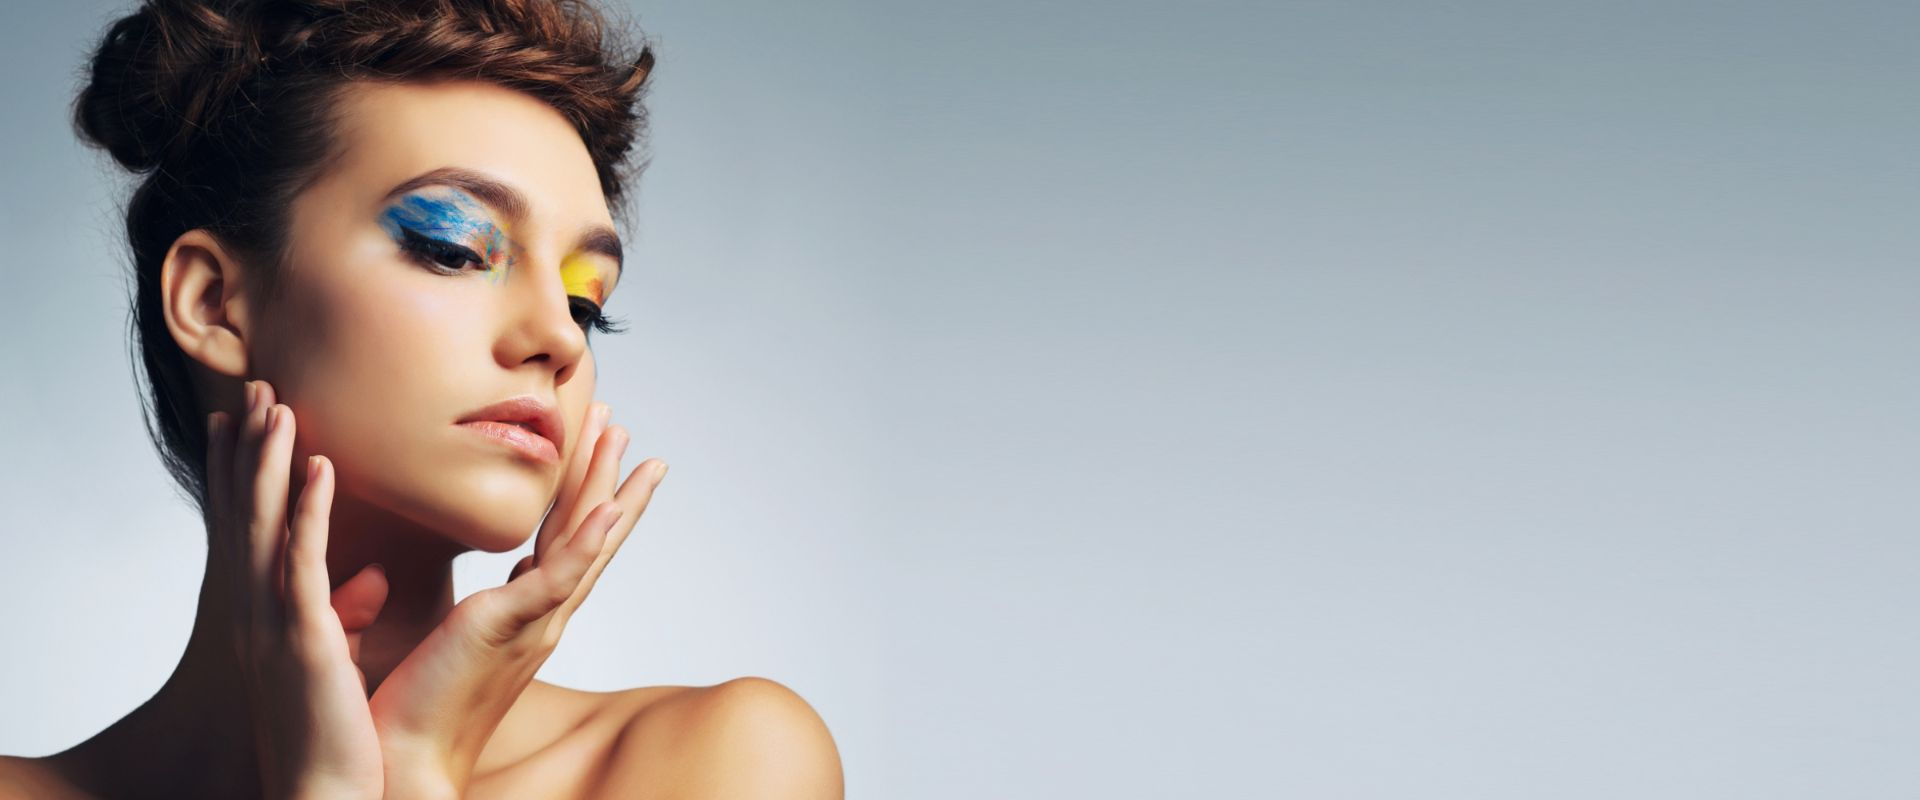 woman with colorful eyelashes